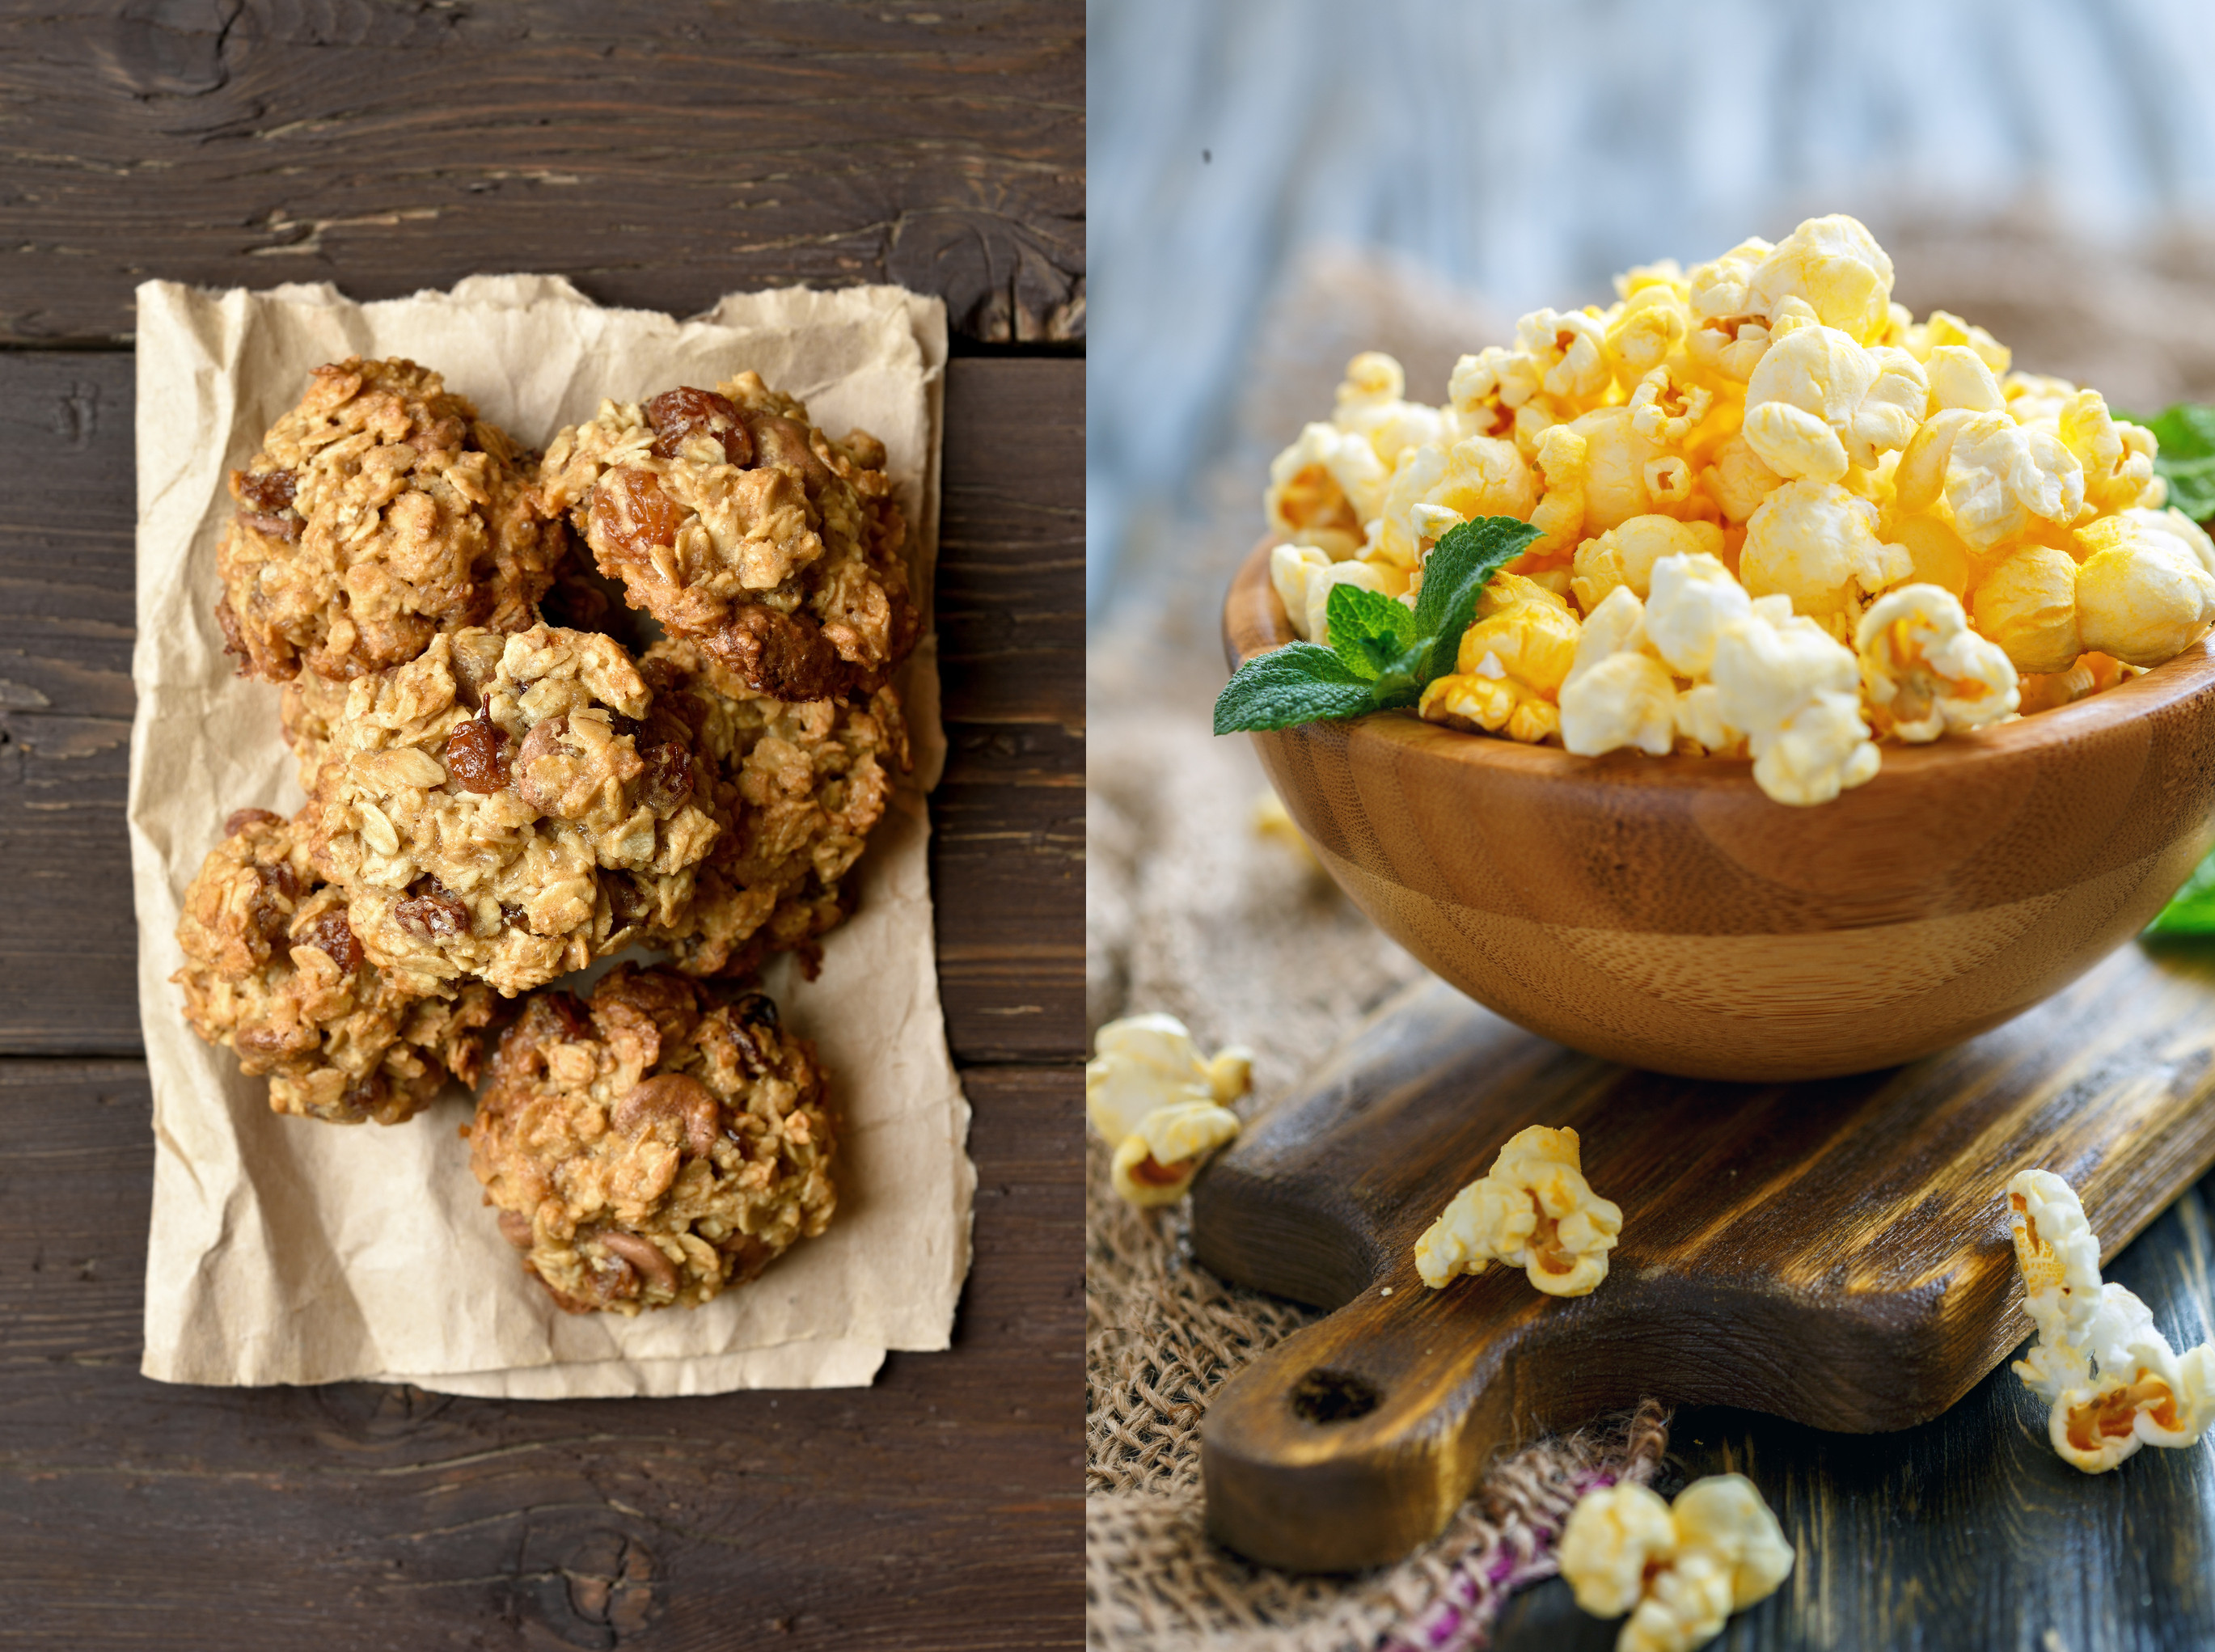 Make a Treat: No Bake Cookies or Gourmet Popcorn